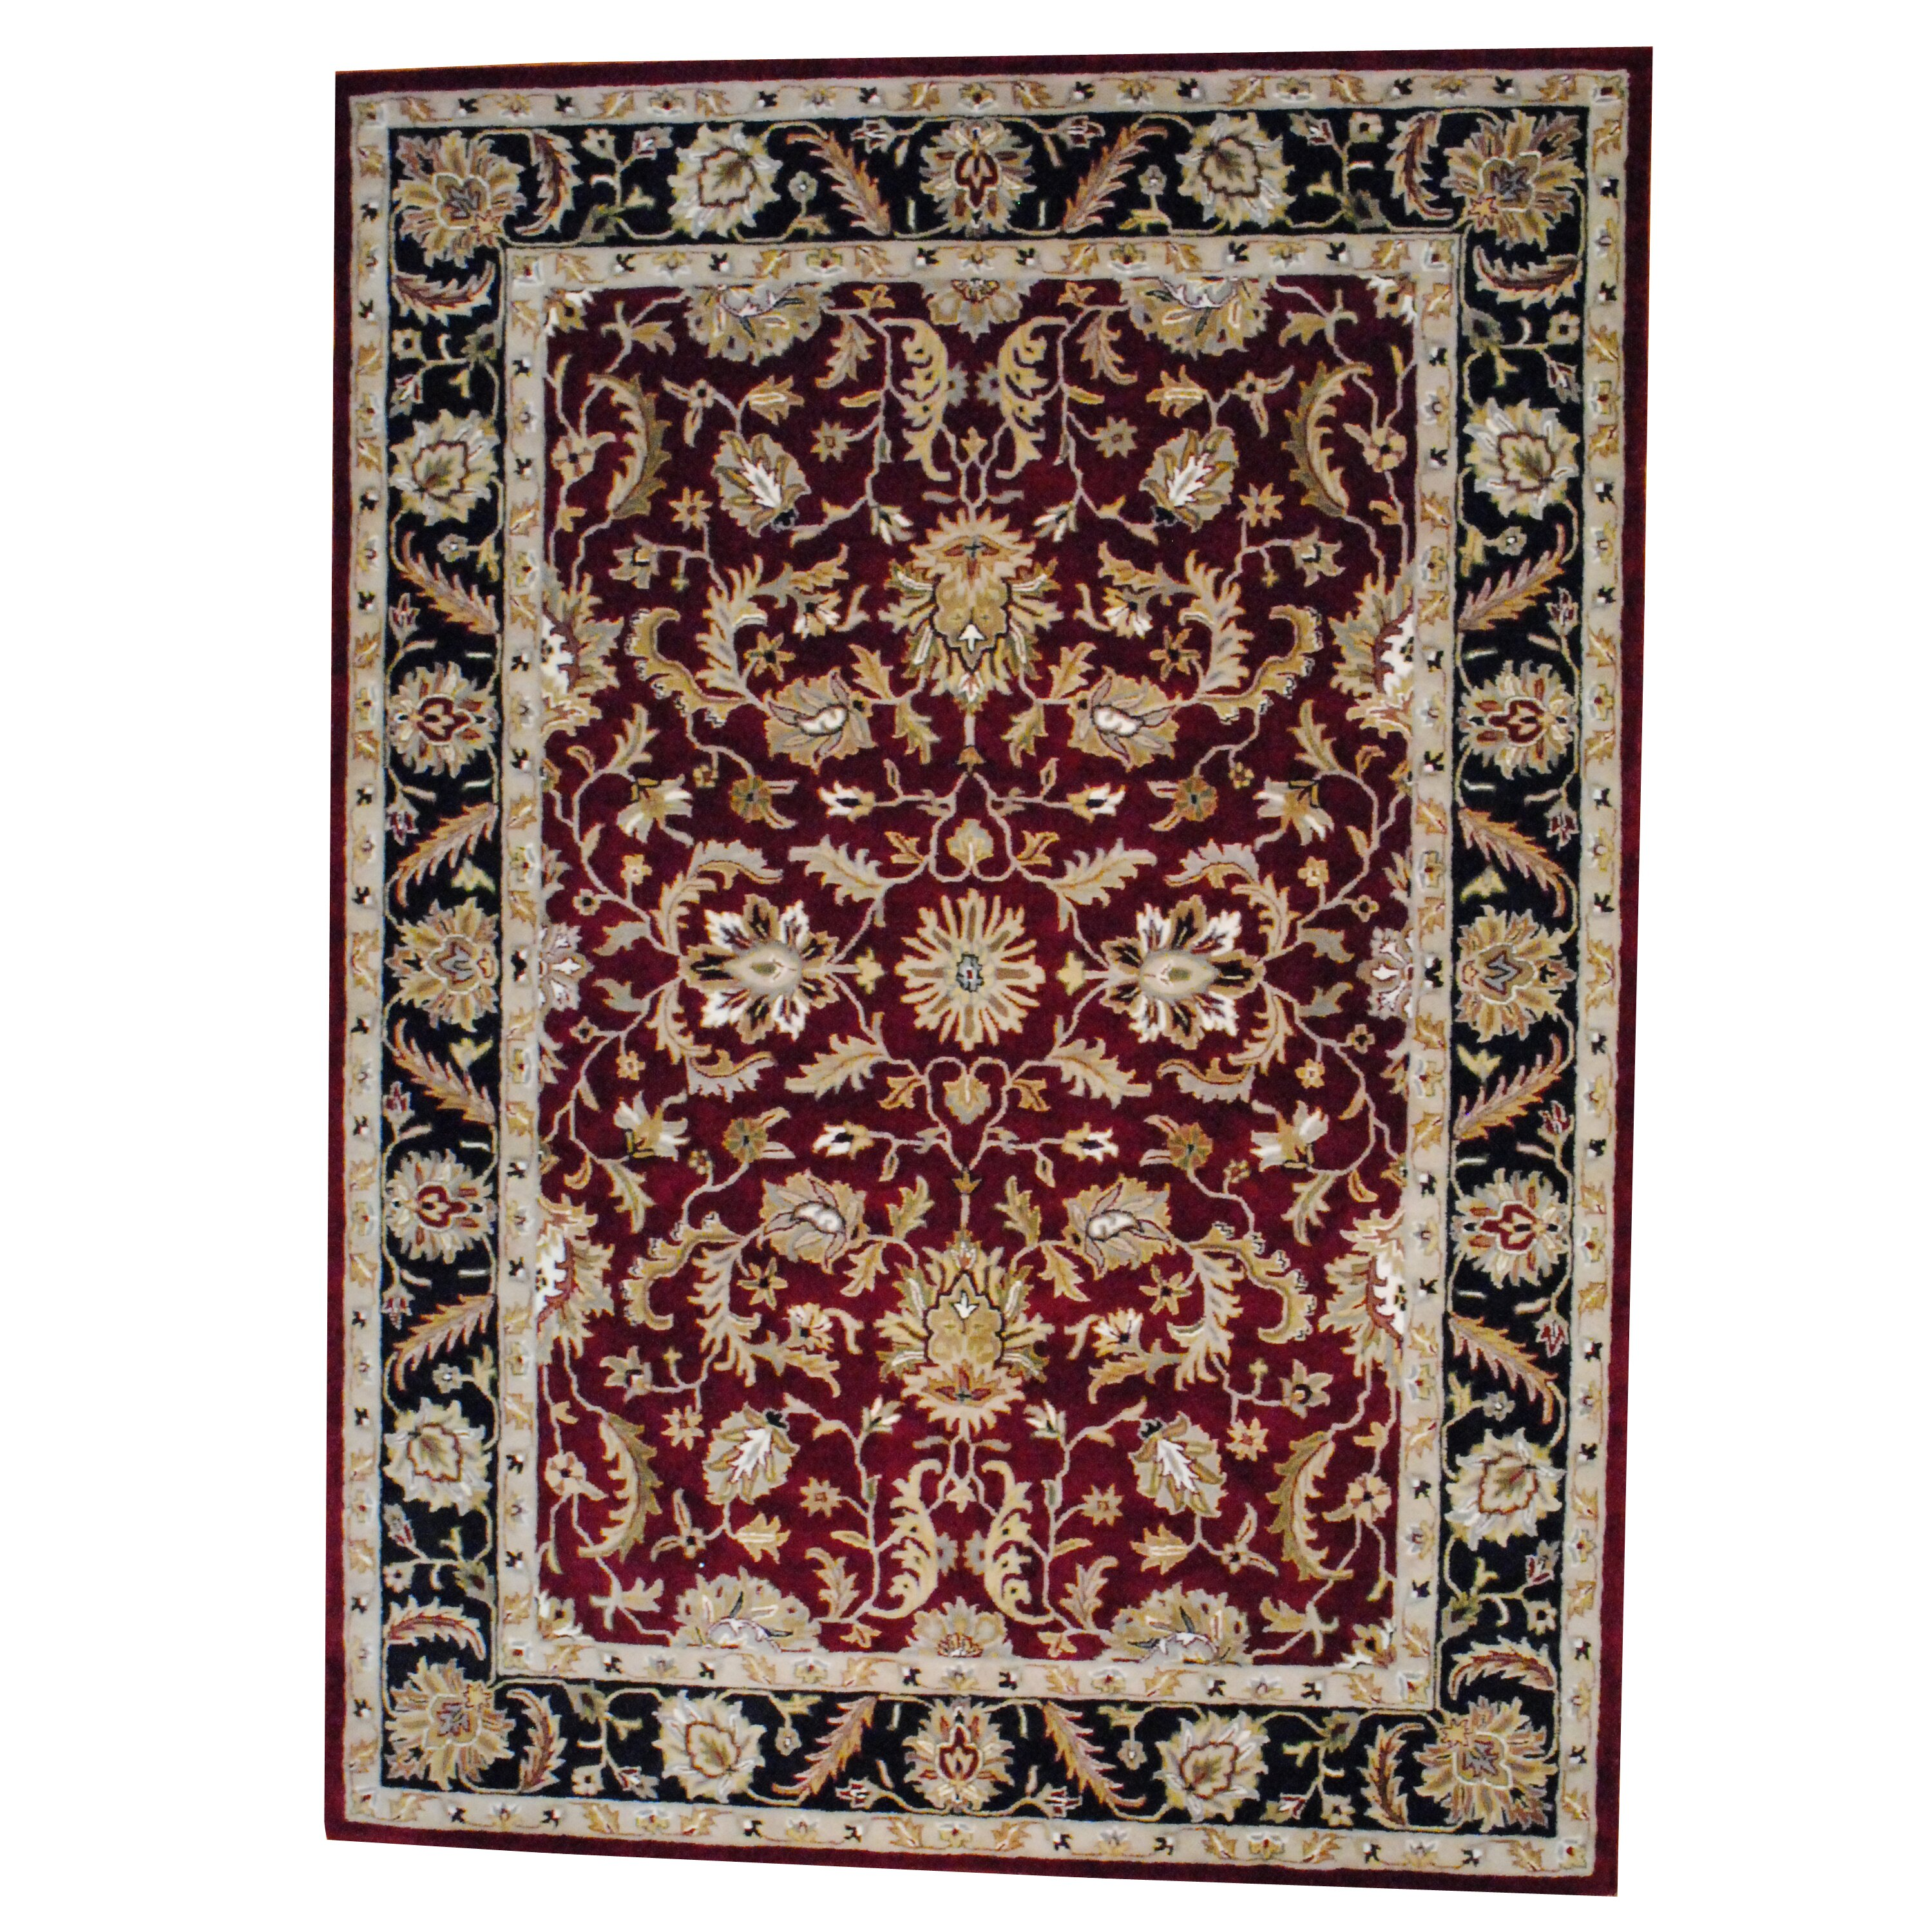 Dog Eating Wool Rug: Herat Oriental Hand Tufted Wool Red/Black Area Rug